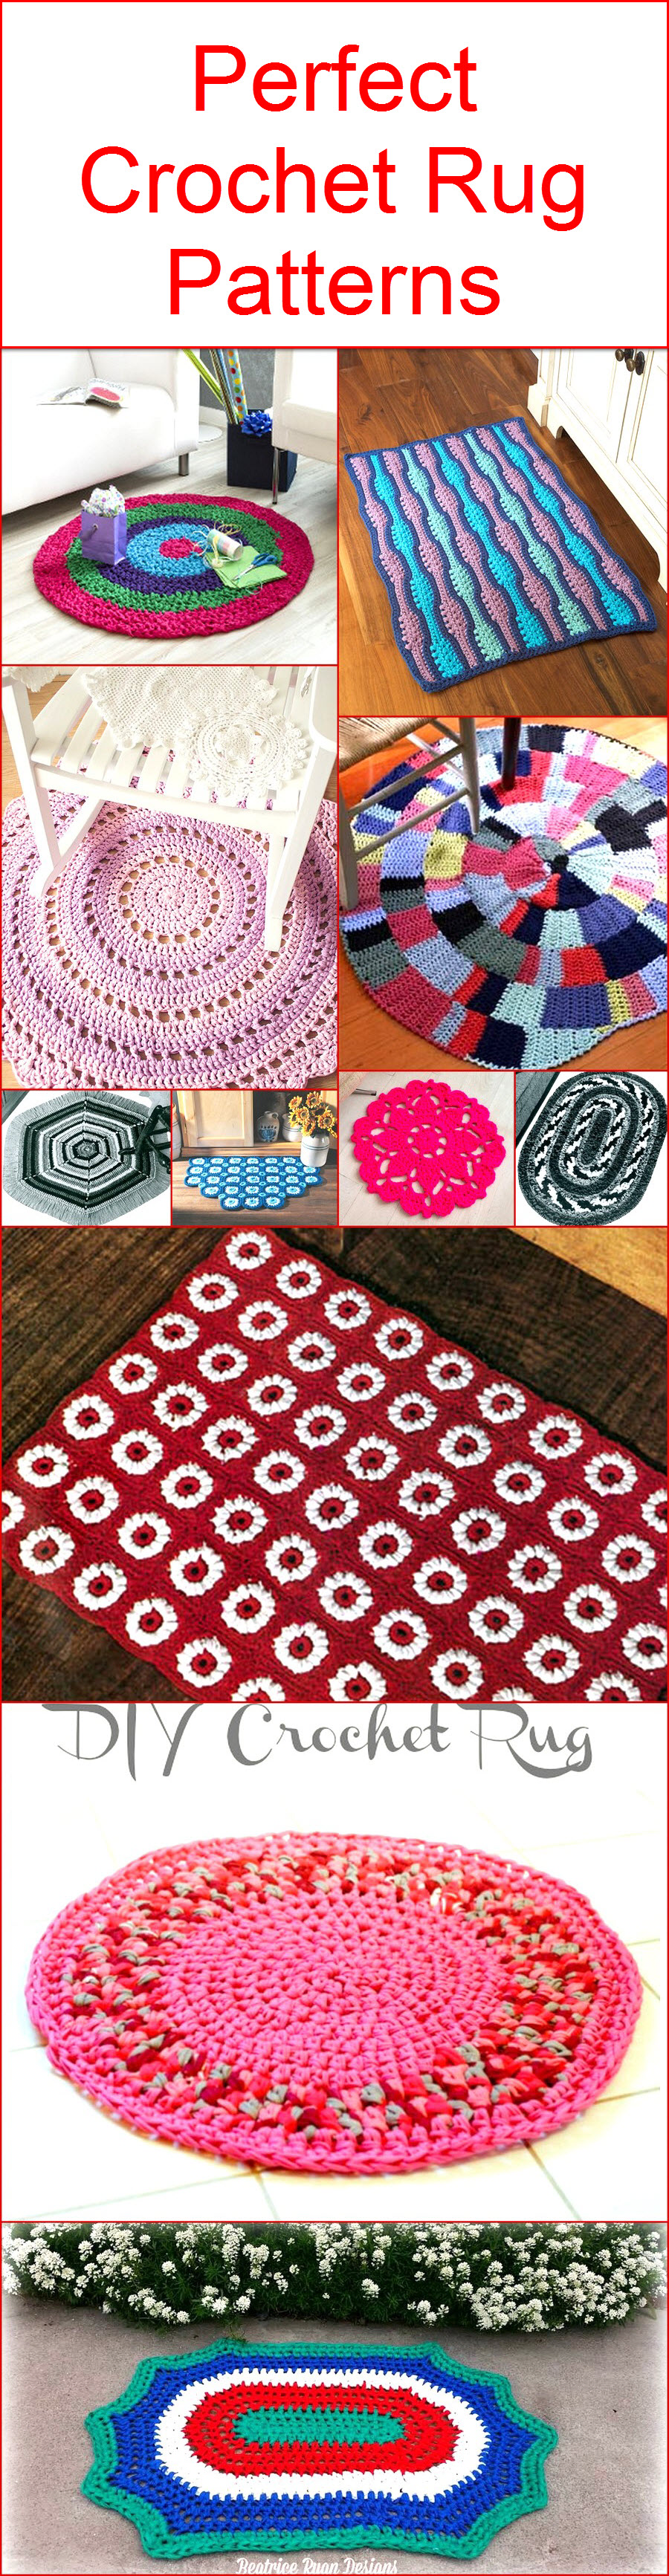 perfect-crochet-rug-patterns